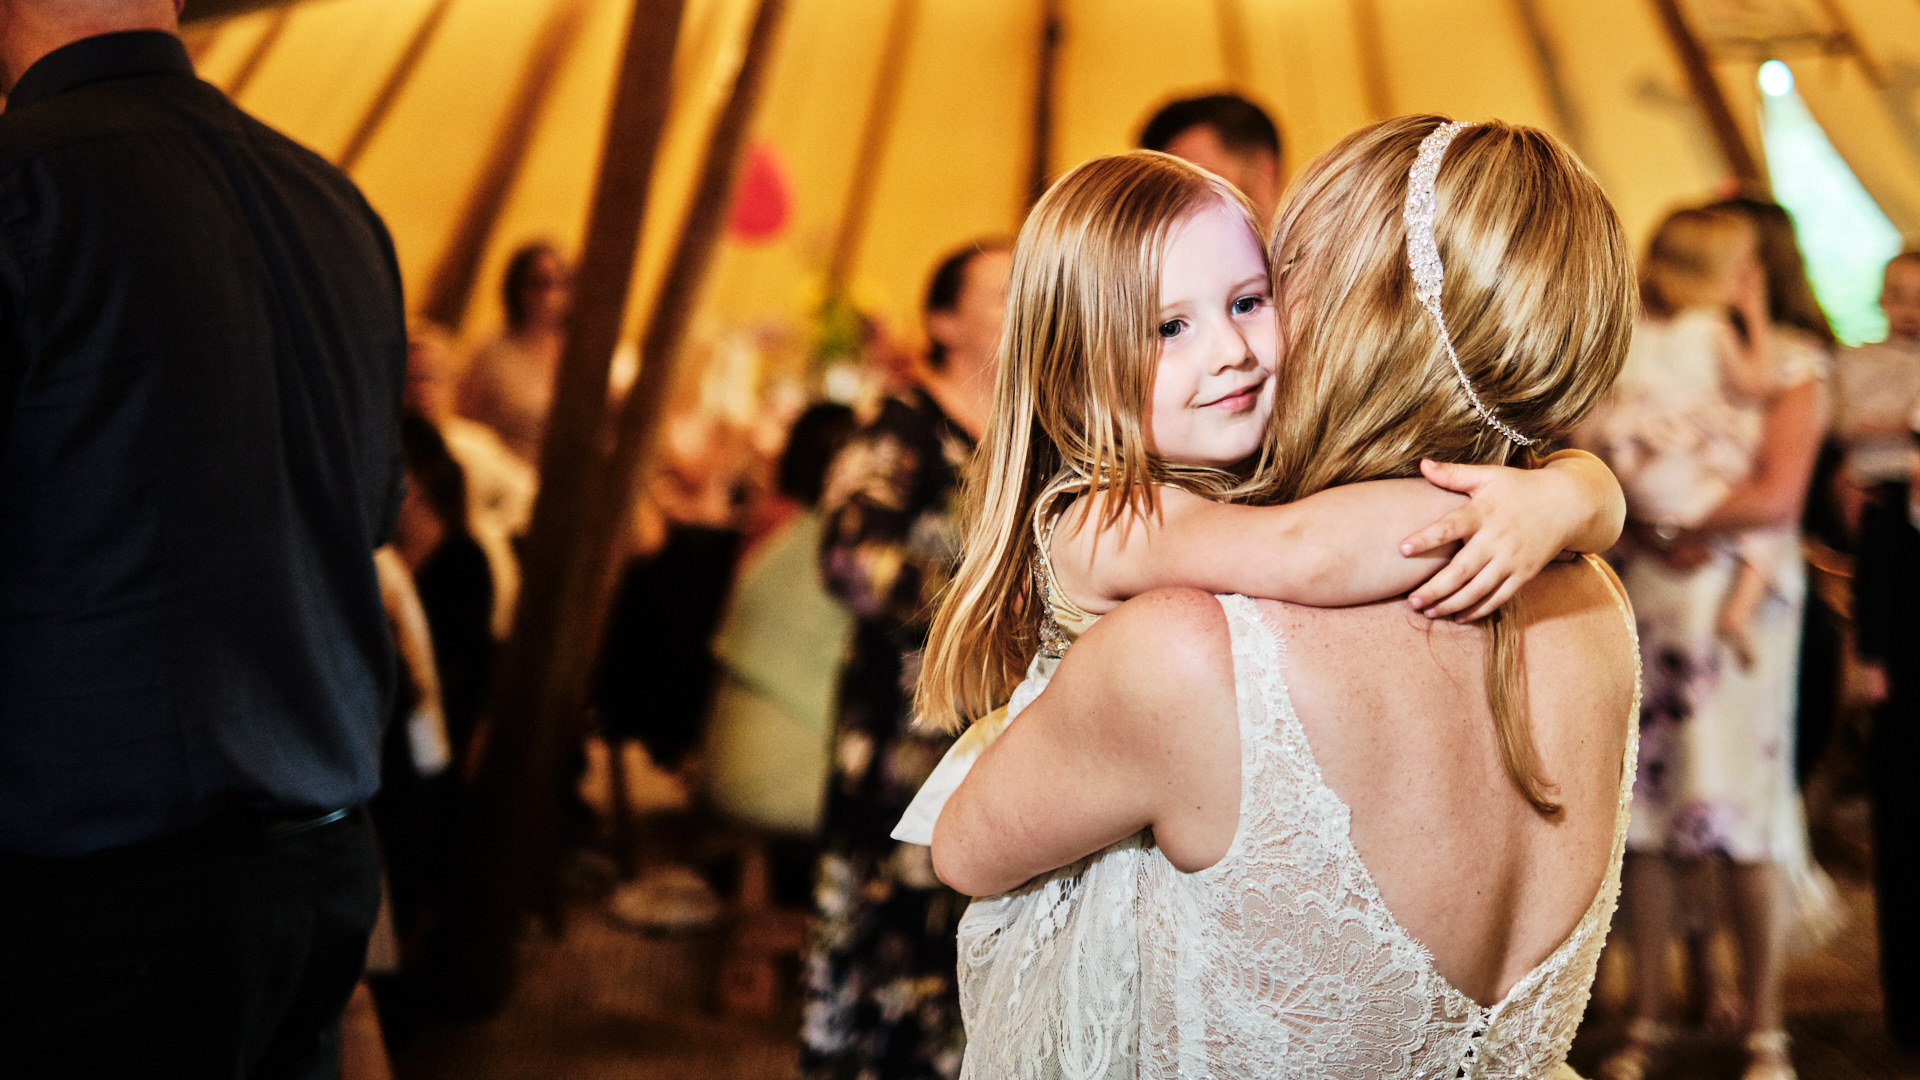 colour photograph of the bride carrying and dancing with a young girl at her wedding